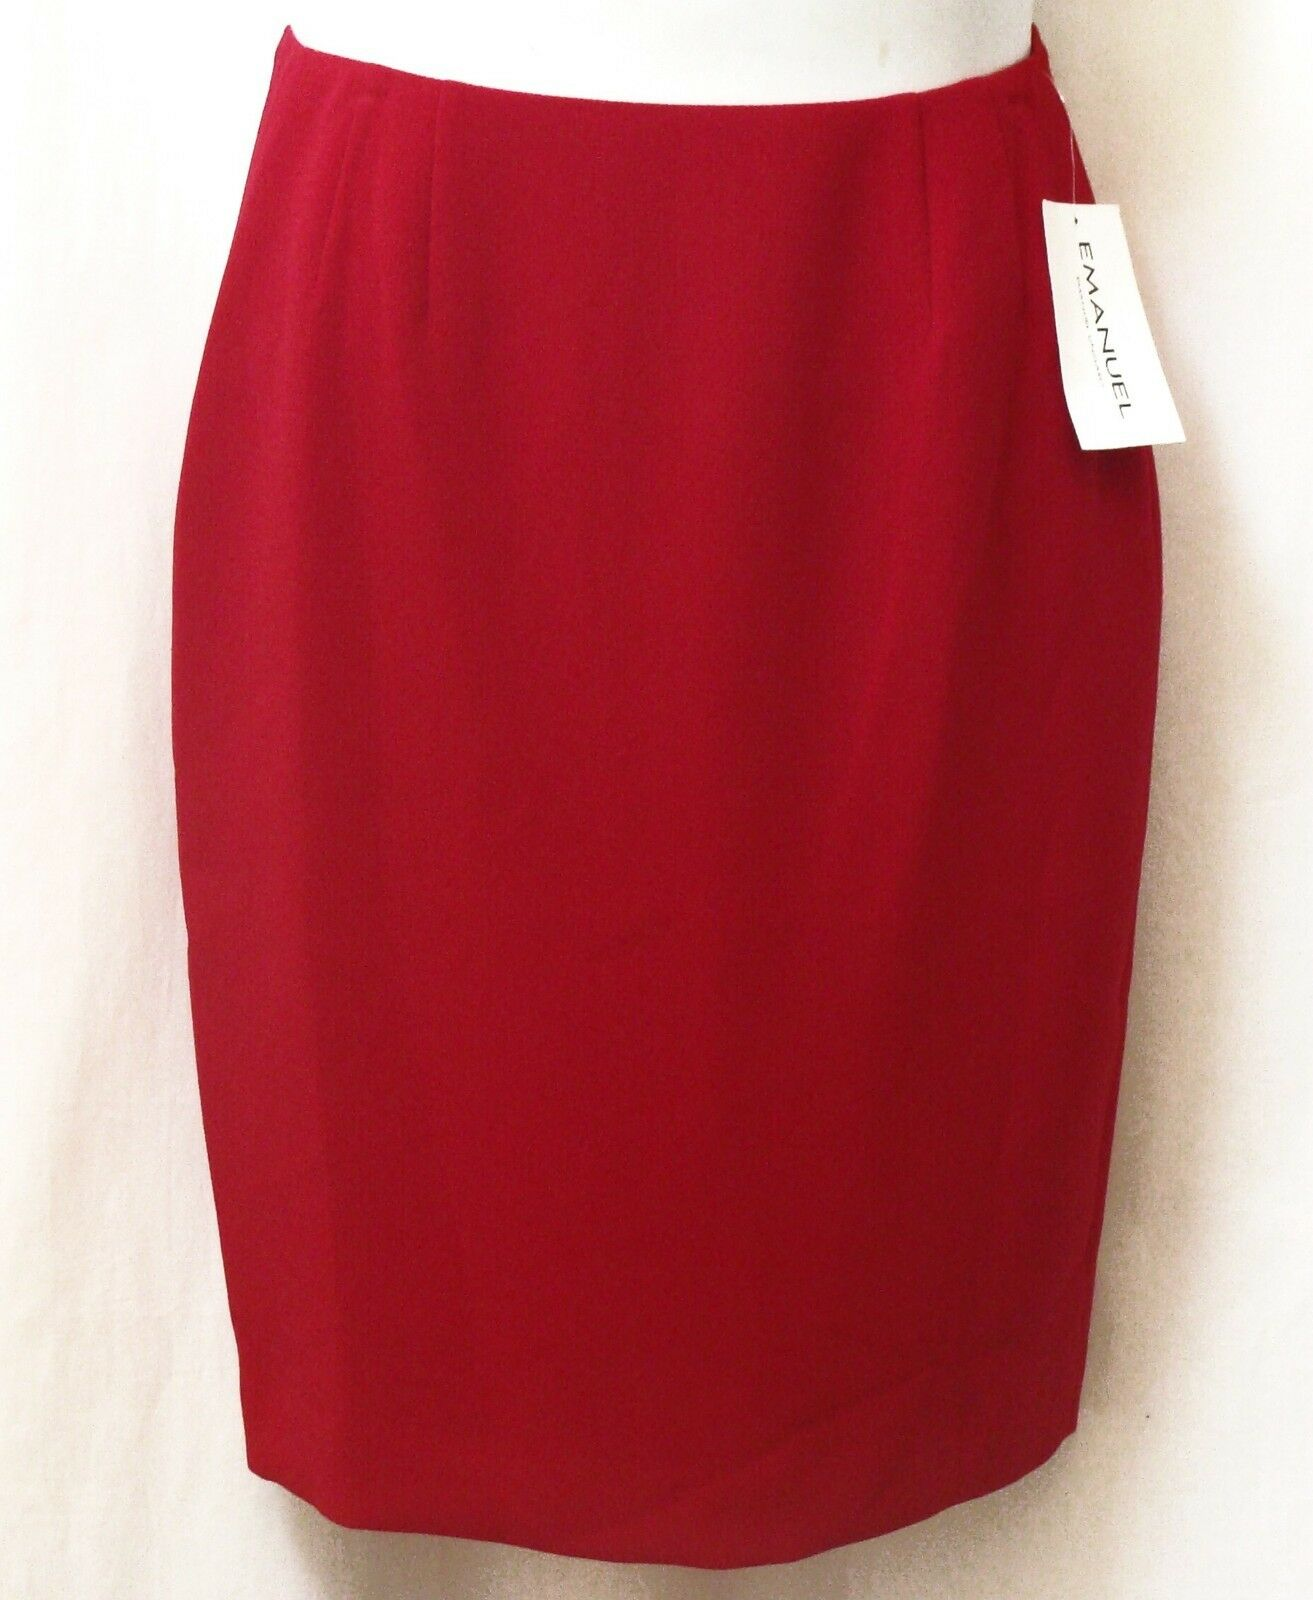 NEW EMANUEL Womens Skirt Size 8 42 Lined Polyester Red